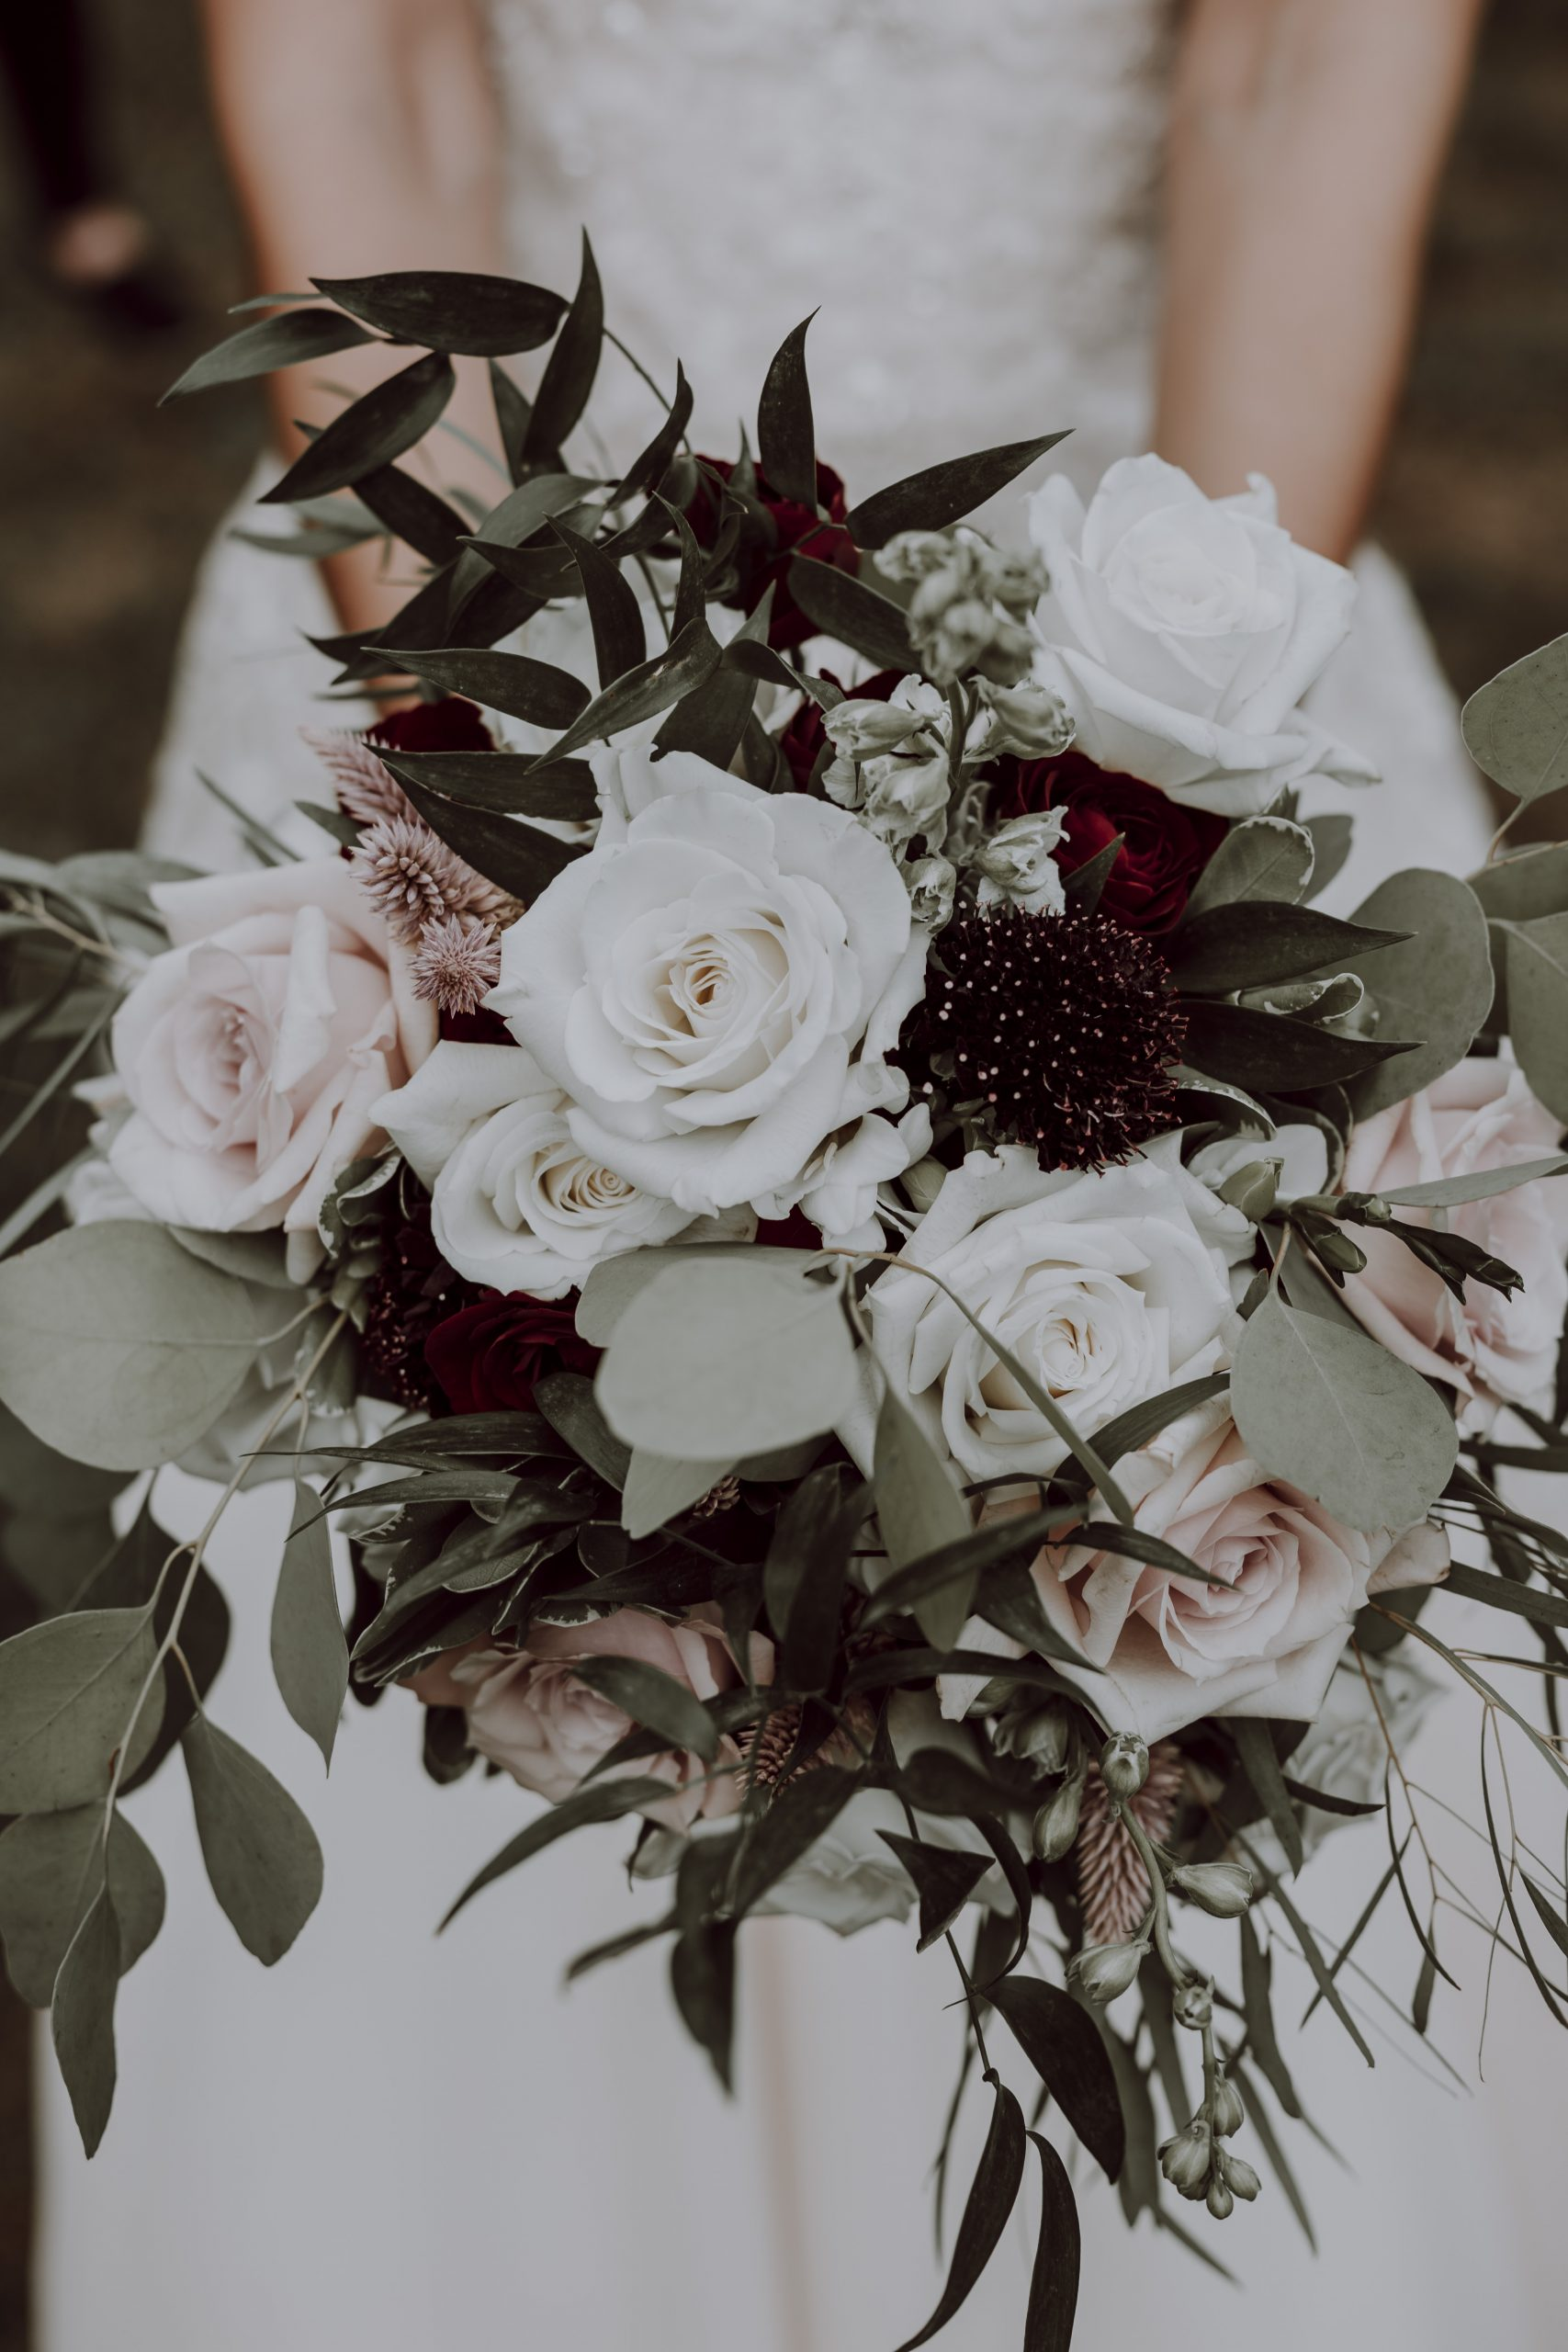 Neutral pastels played a huge part in the decoration of Andrew and Paige's wedding this past Fall. Captured by Lovefusion Photography at Stock's Manor in Mechanicsburg, PA. Featured on Dream Weddings.